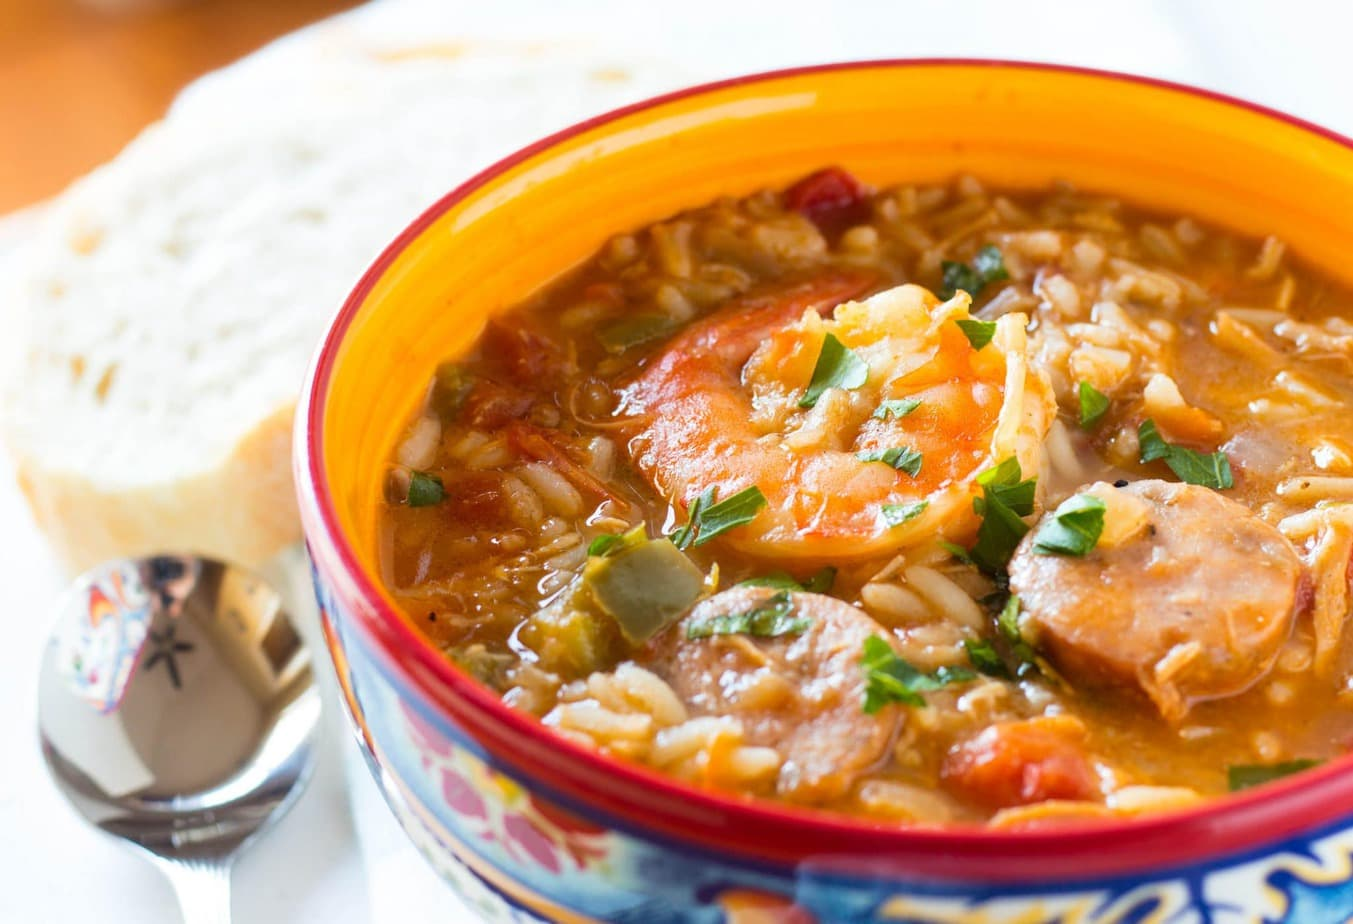 One Pot Creole Chicken, Sausage and Shrimp Gumbo is a tasty and complete meal in one. With chicken and apple sausage and lots of veggies, your family will love this flavor!